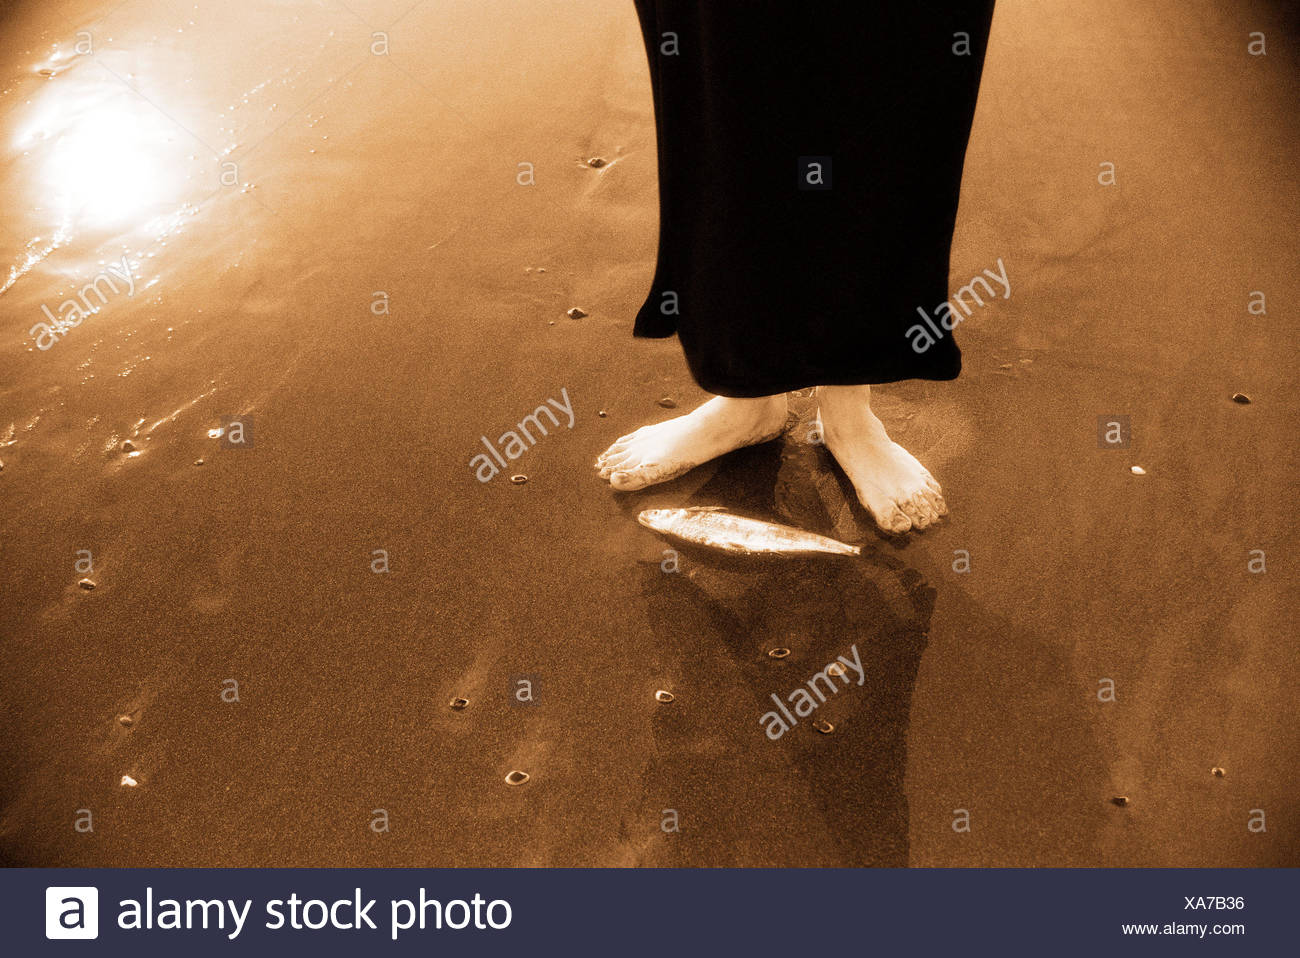 Woman standing next to dead fish on beach Stock Photo